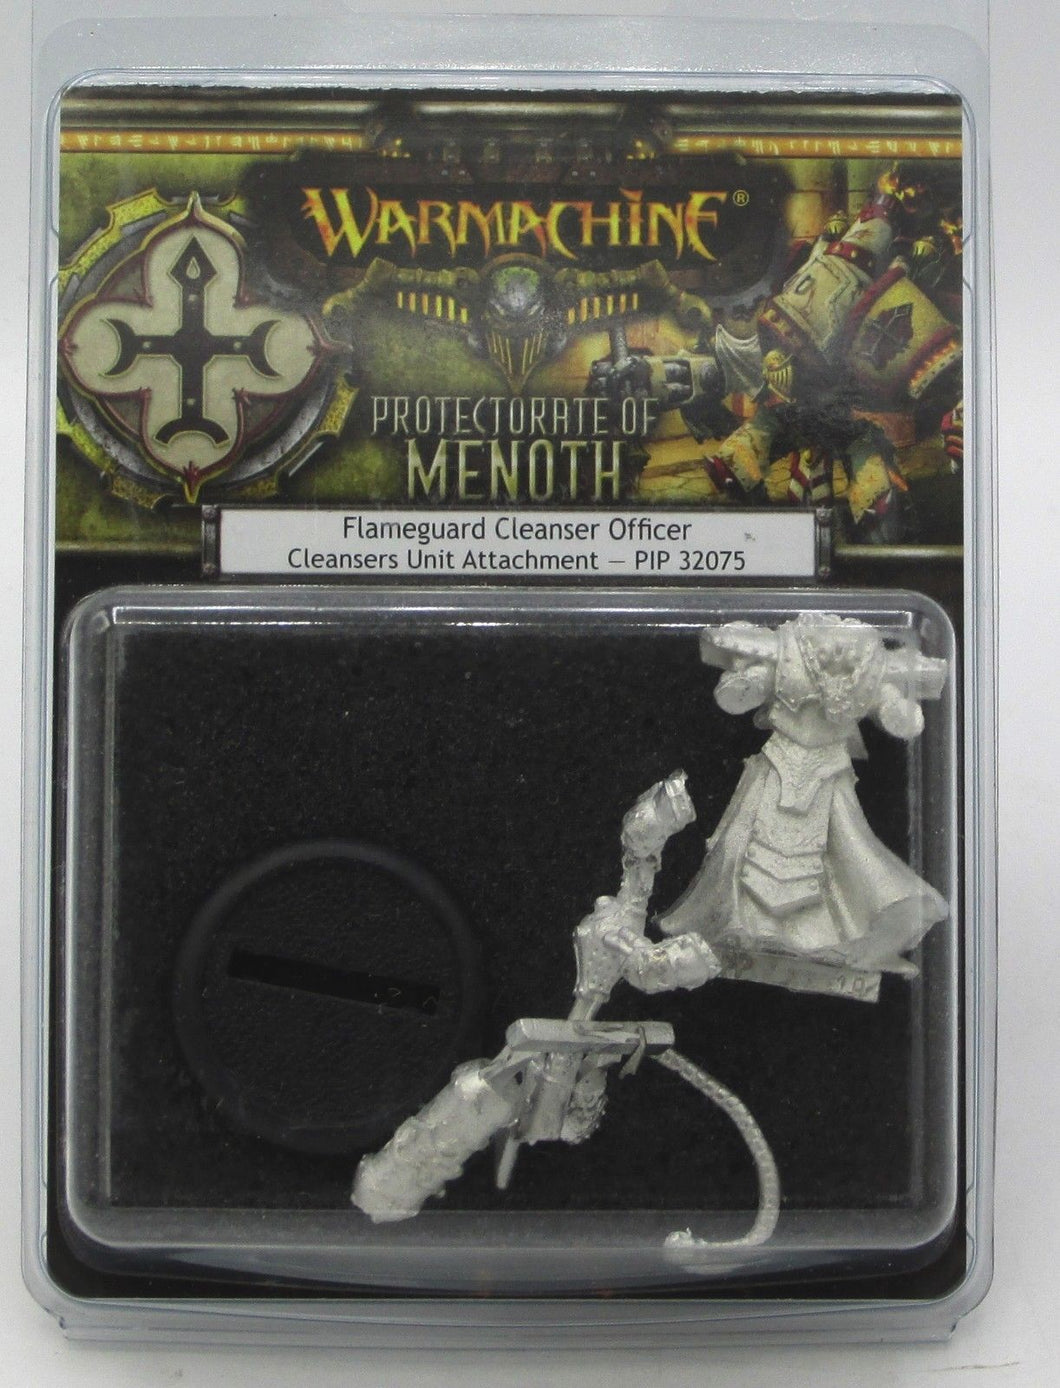 Warmachine PIP32075 Flameguard Cleanser Officer Clensers Unit Attachment Model Kit | Privateer Press - Kickstarted Games